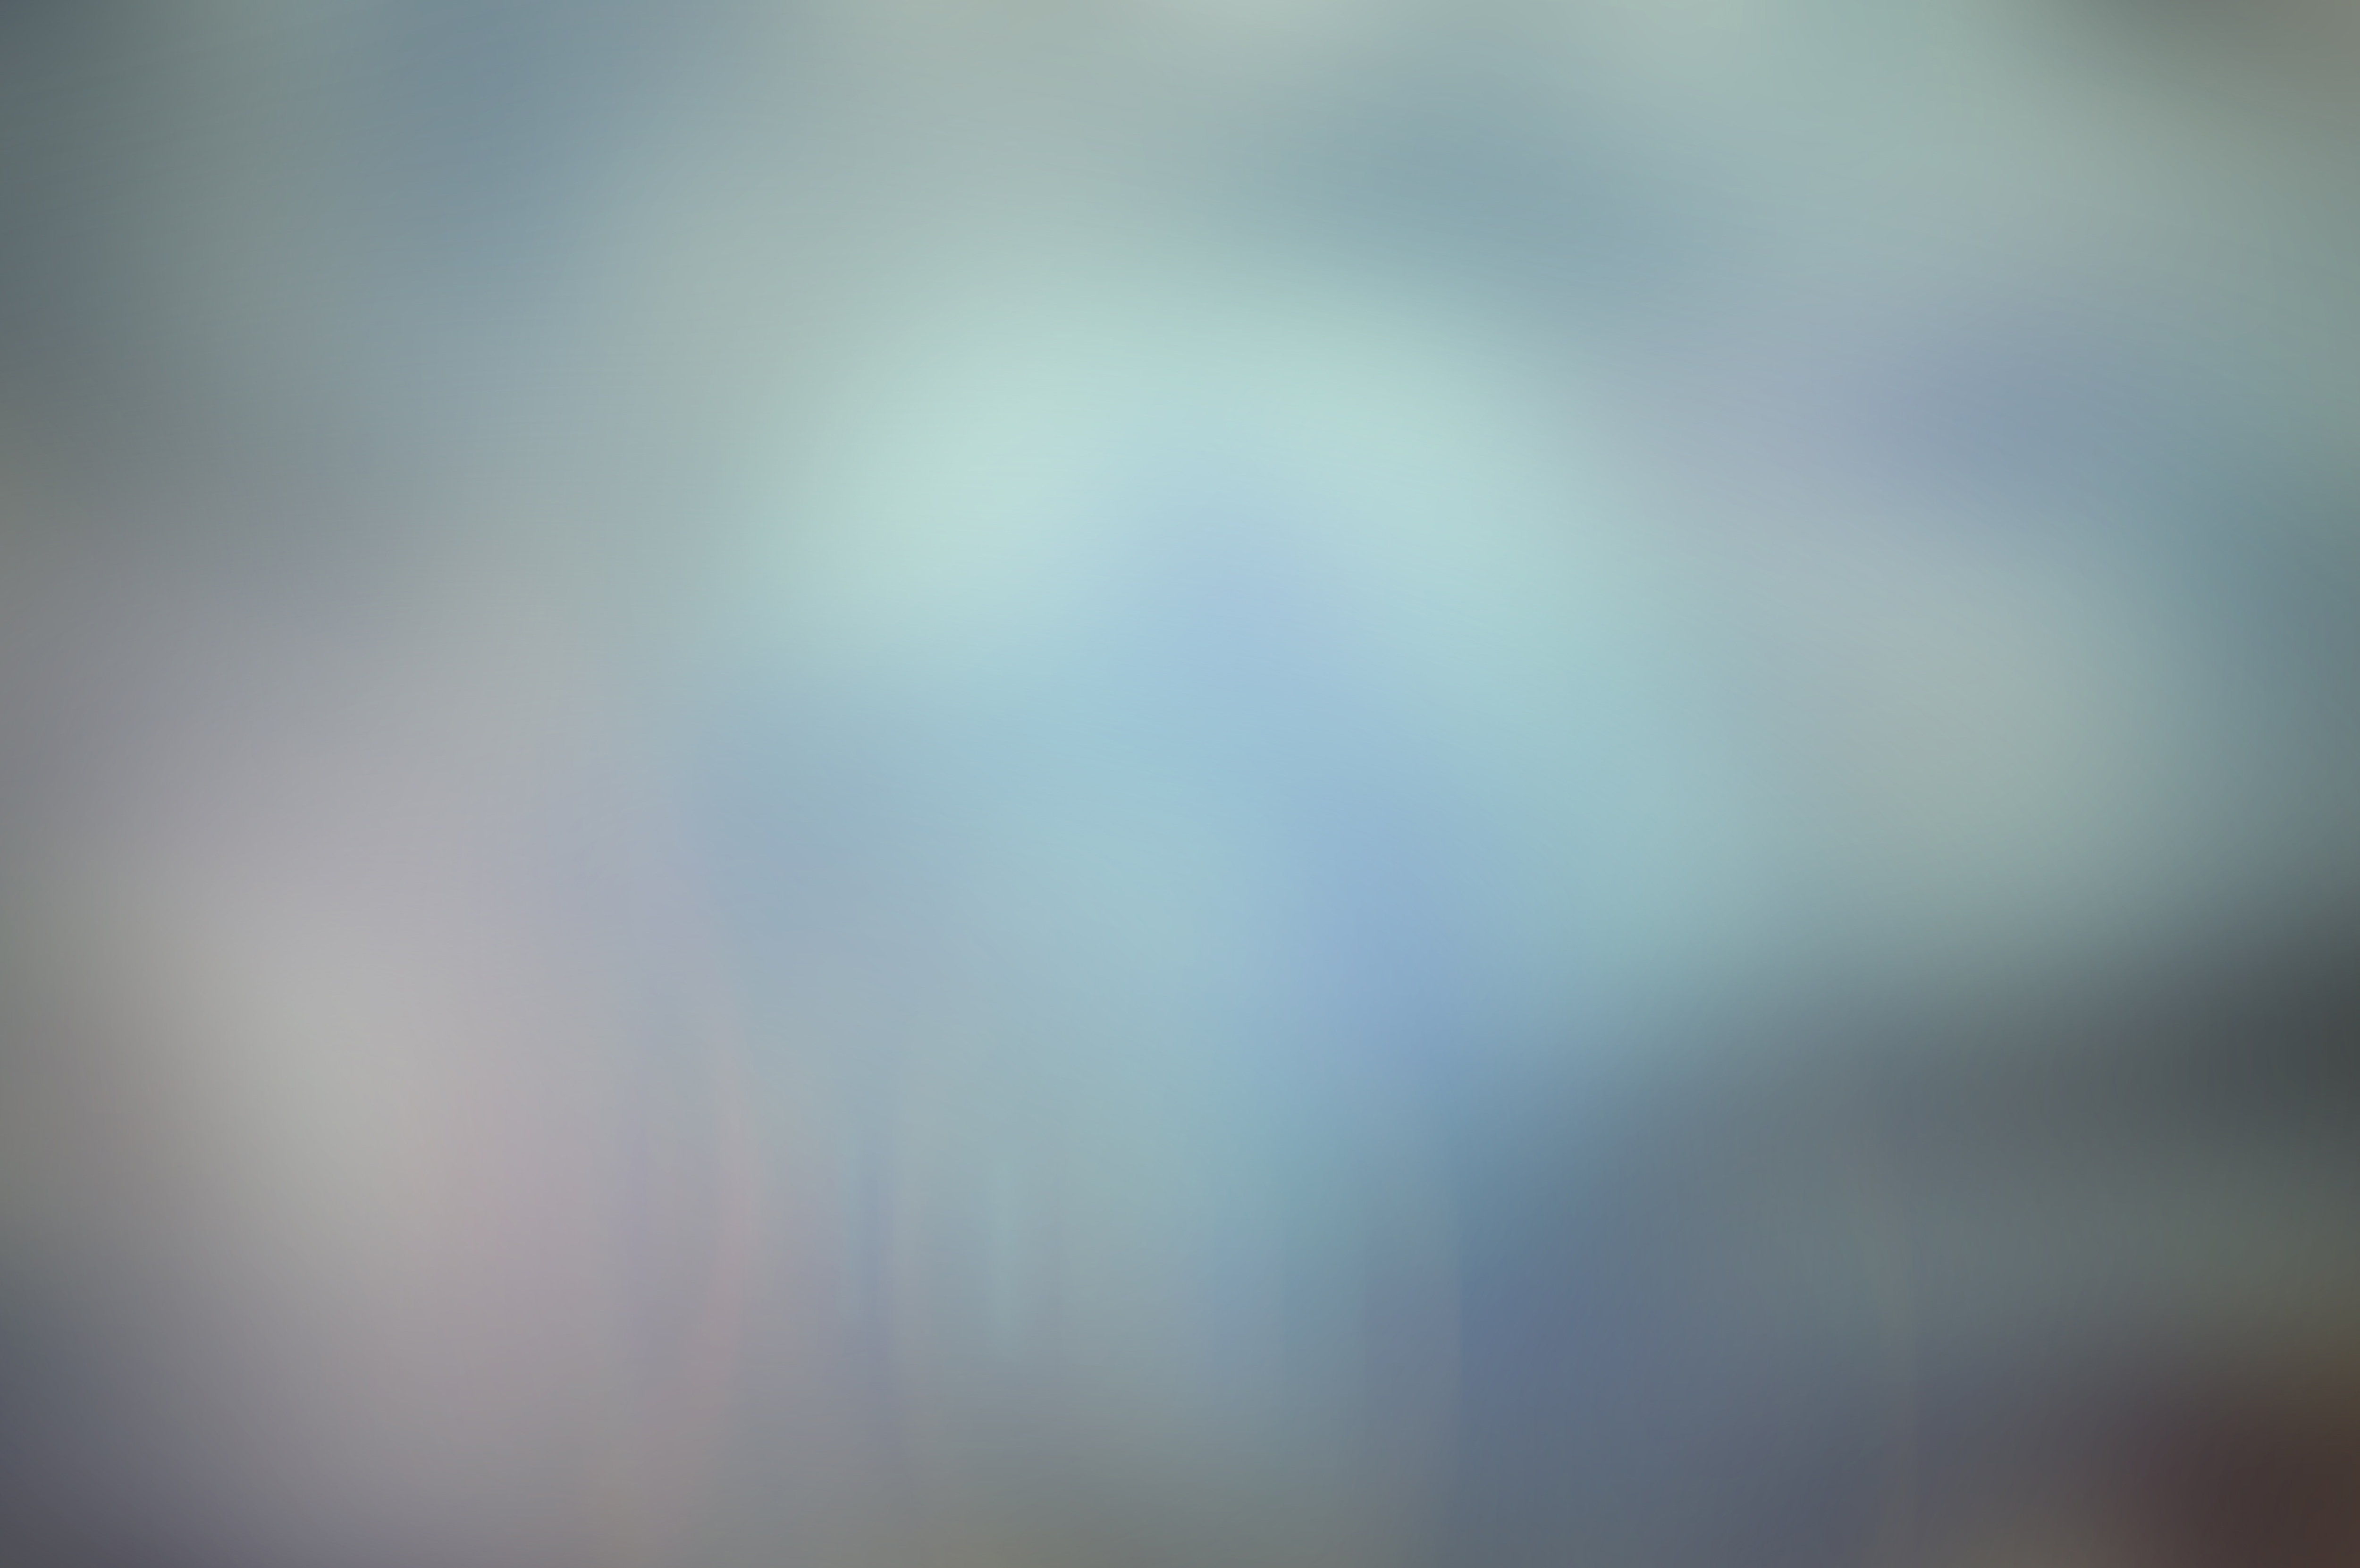 Ethereal Backgrounds example image 17